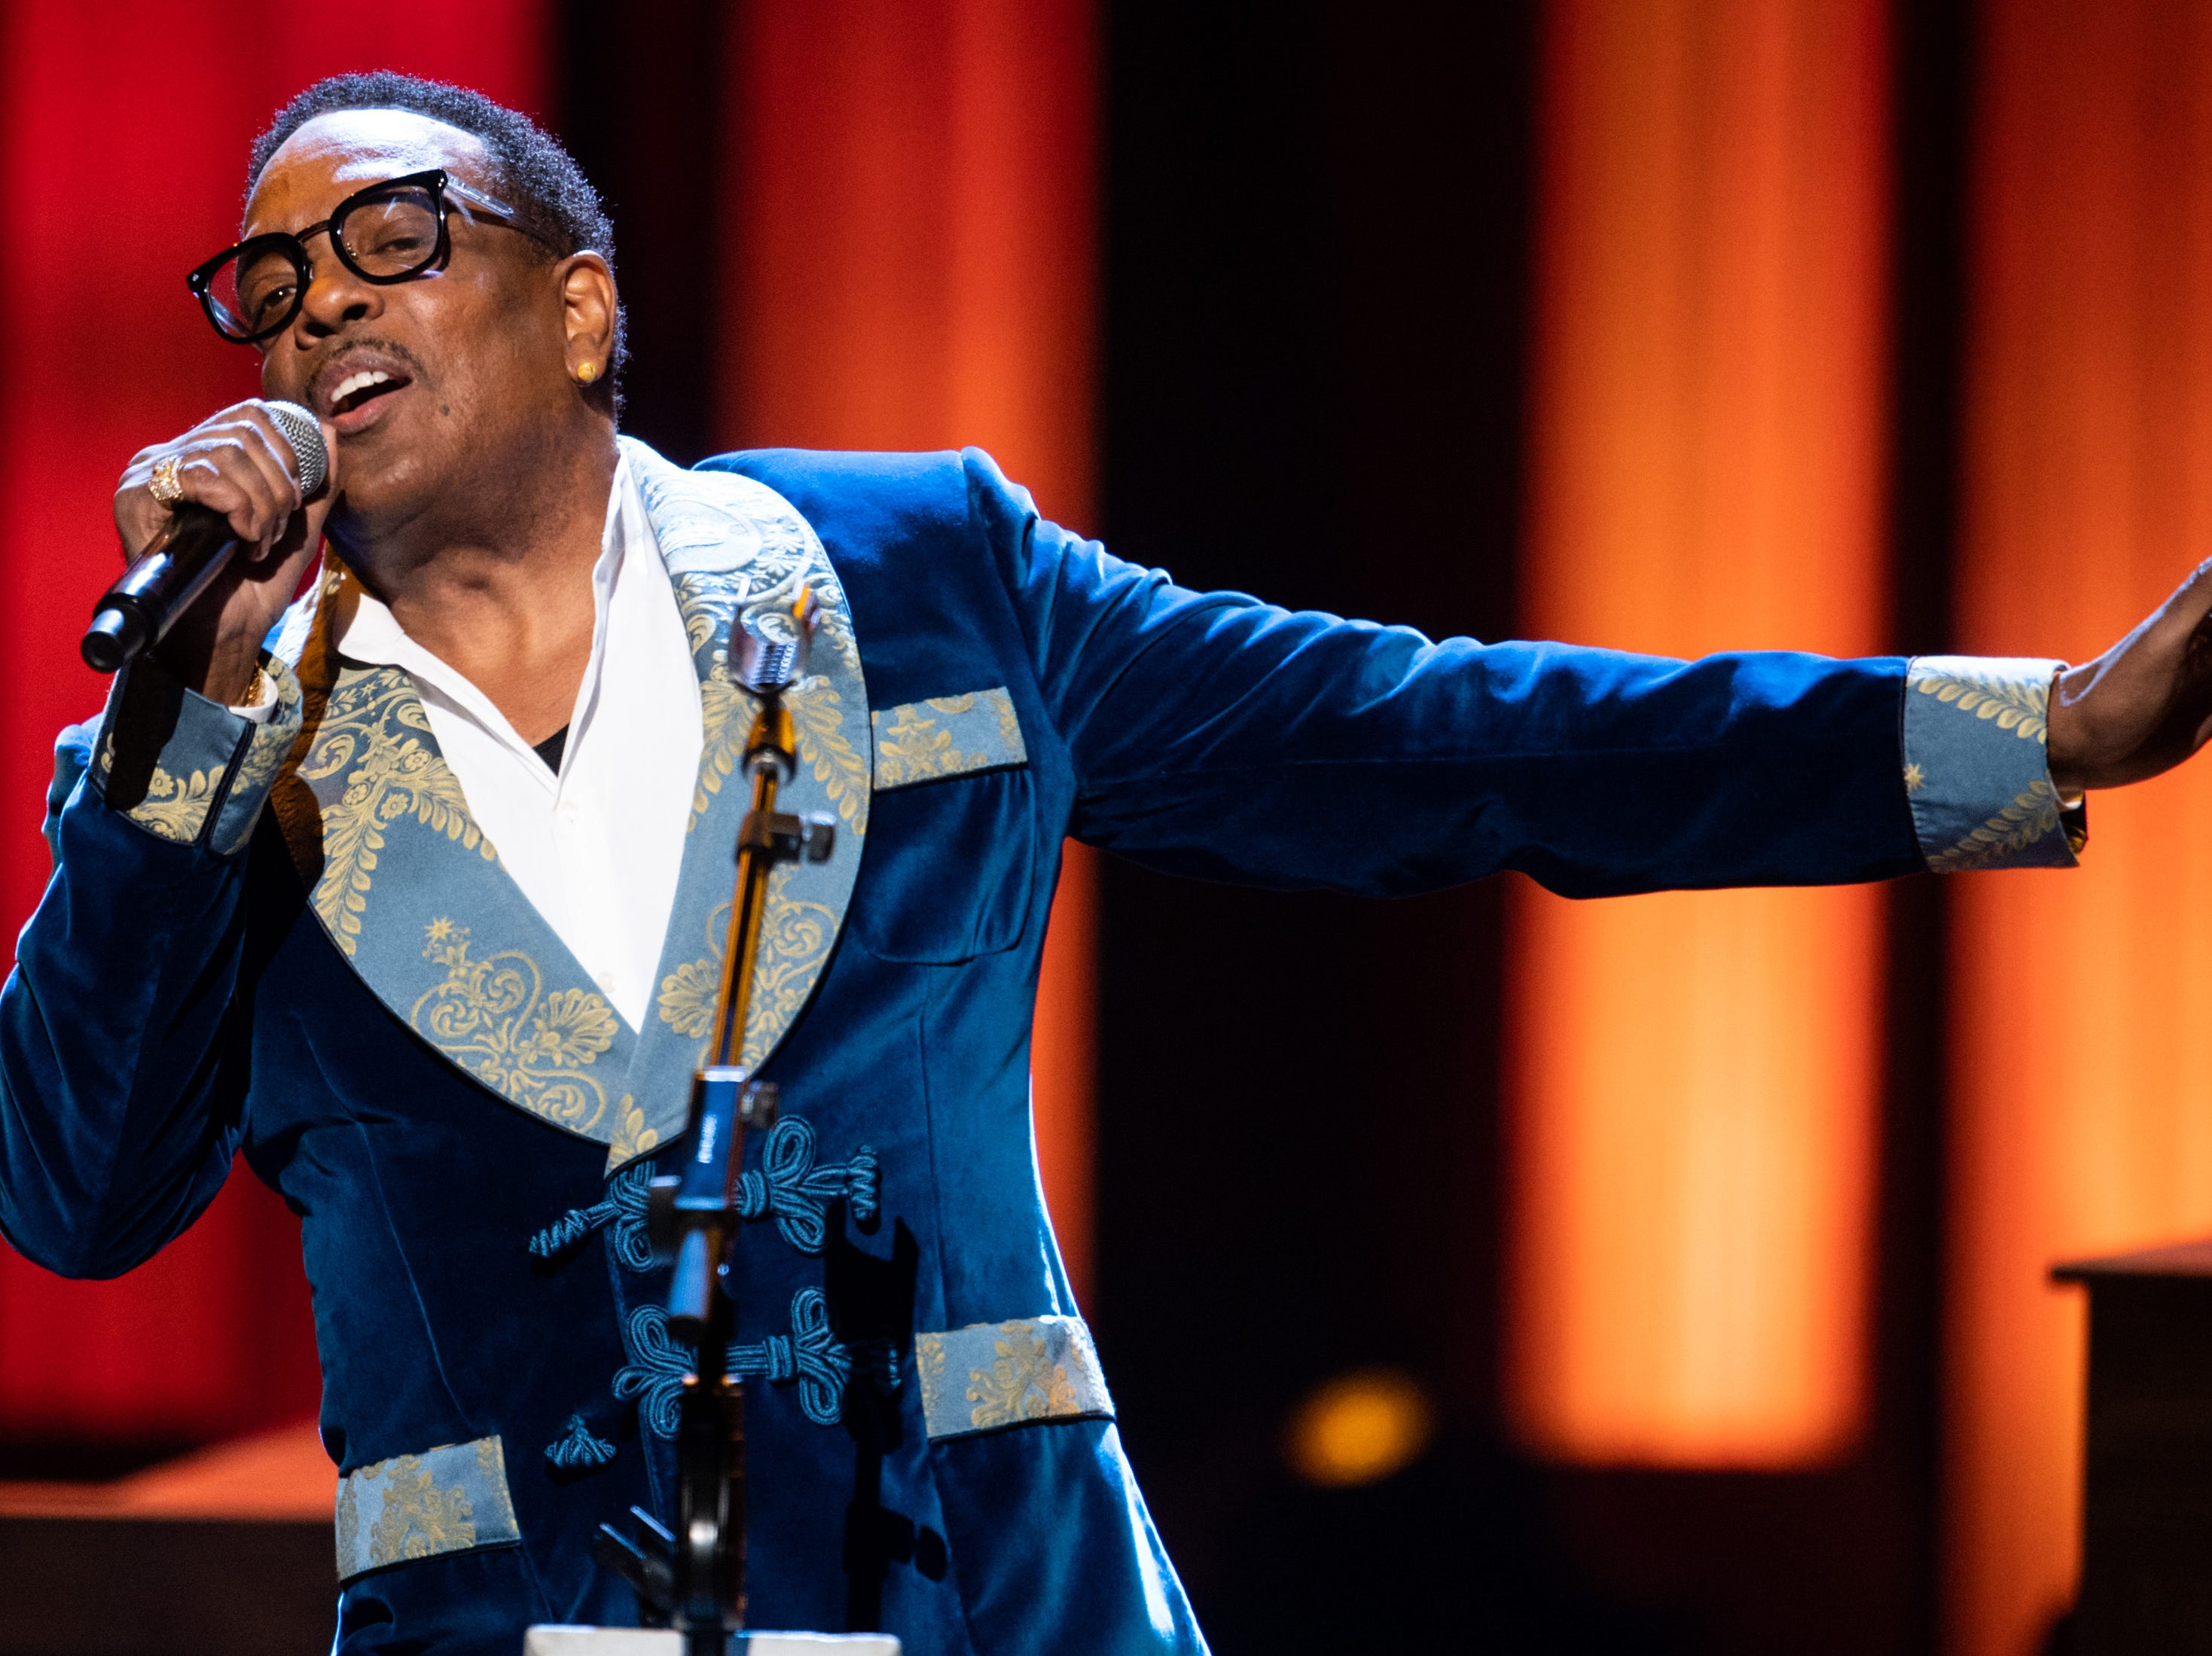 Charlie Wilson performs during the An Opry Salute to Ray Charles concert at The Grand Ole Opry in Nashville, Tenn., Monday, Oct. 8, 2018.